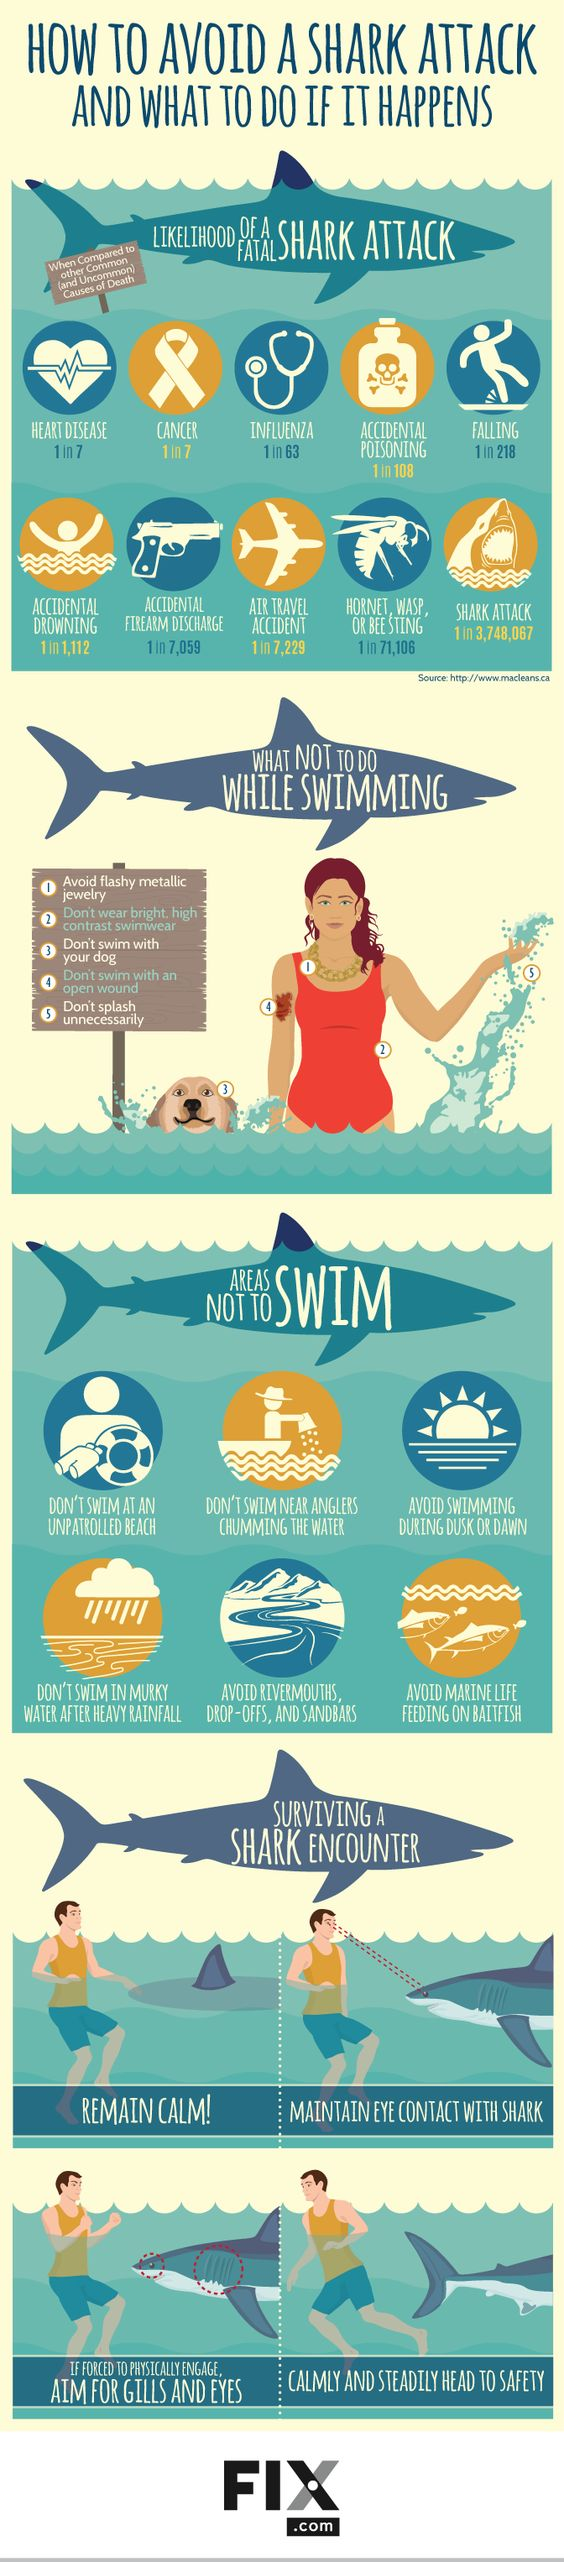 How to avoid a shark attack infographic